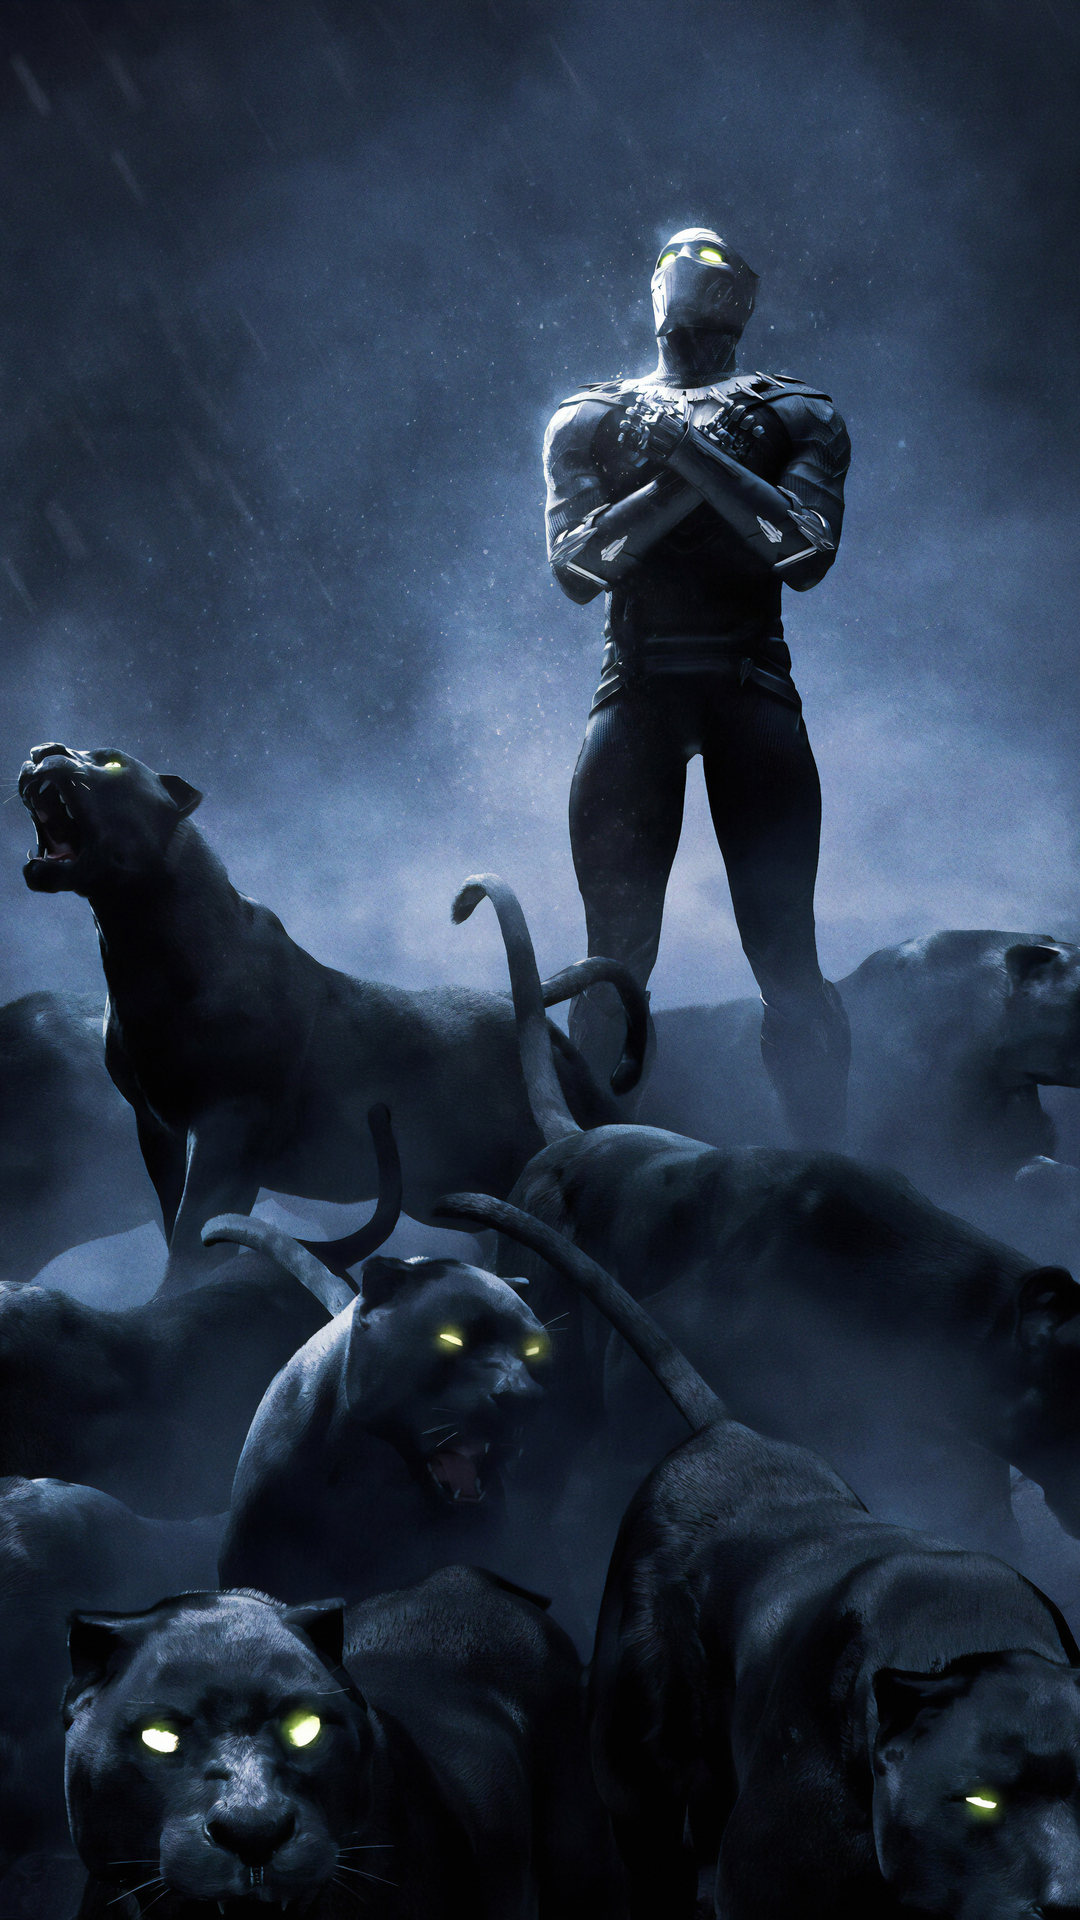 1080x1920 Black Panther 4k Rise Up Iphone 7,6s,6 Plus ...